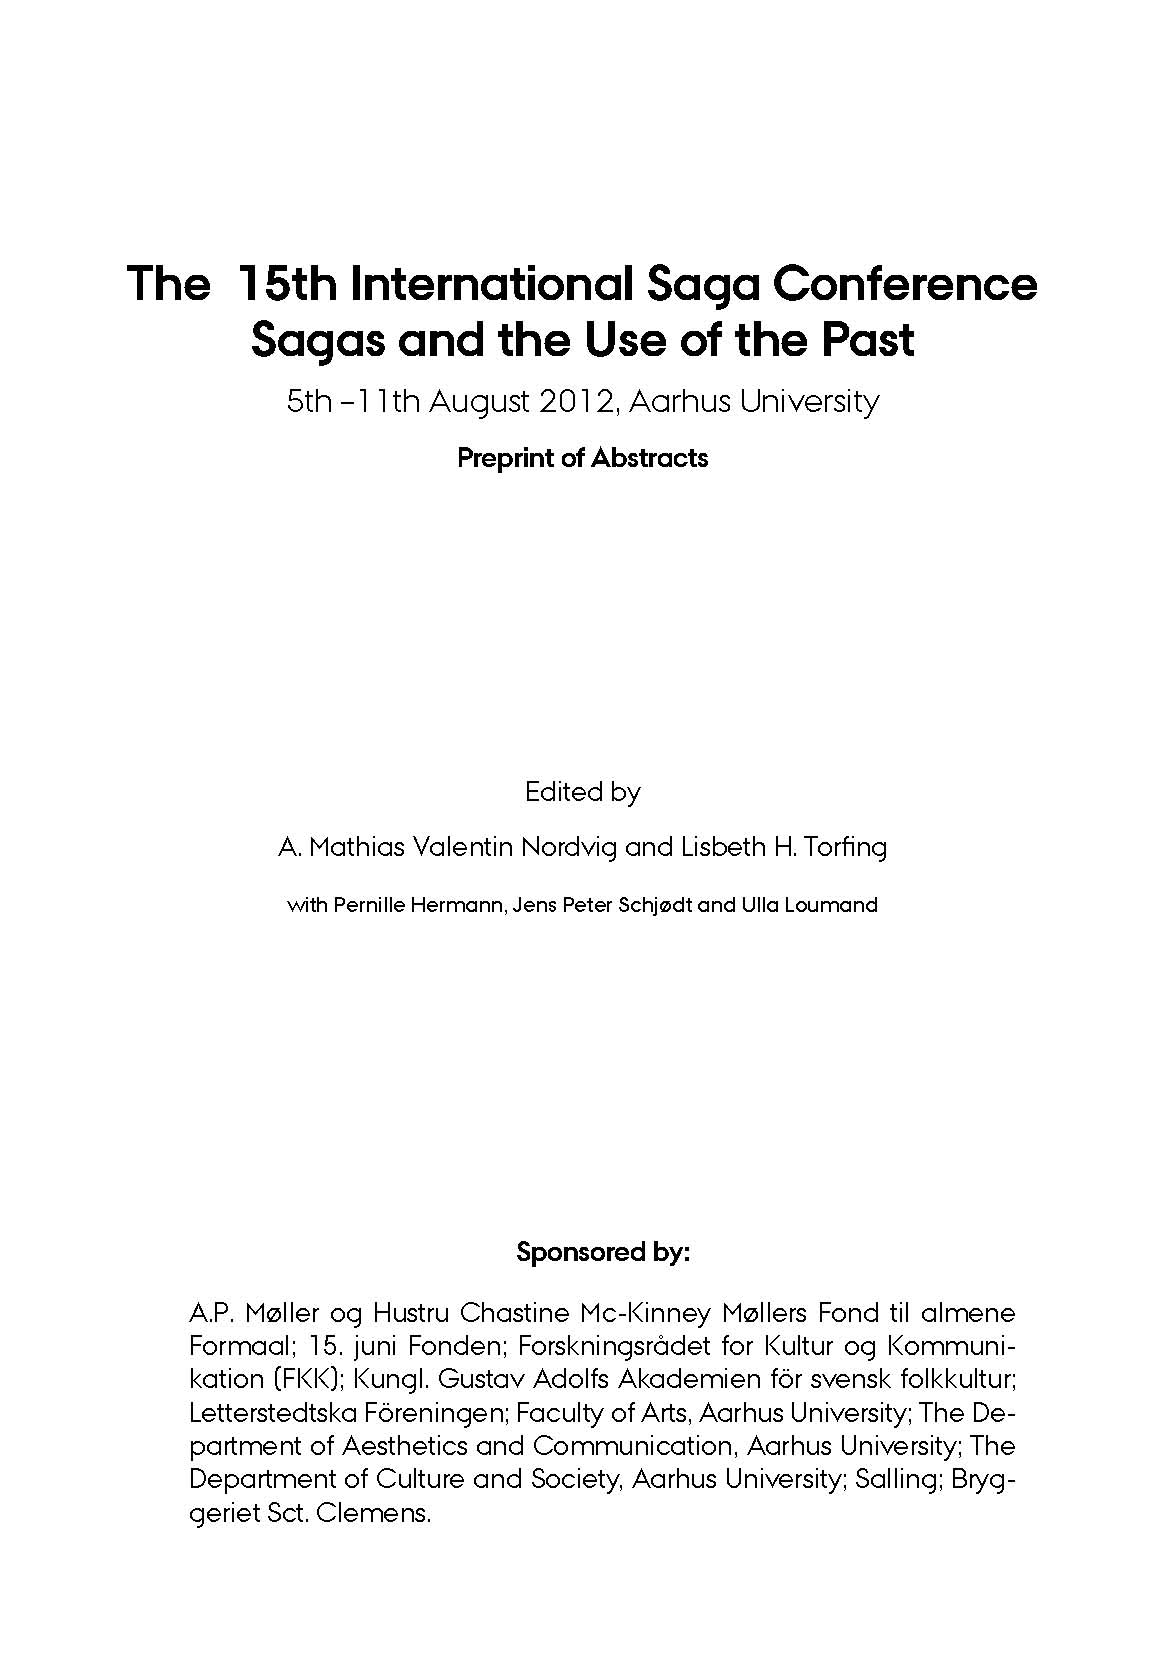 The Fifteenth International Saga Conference